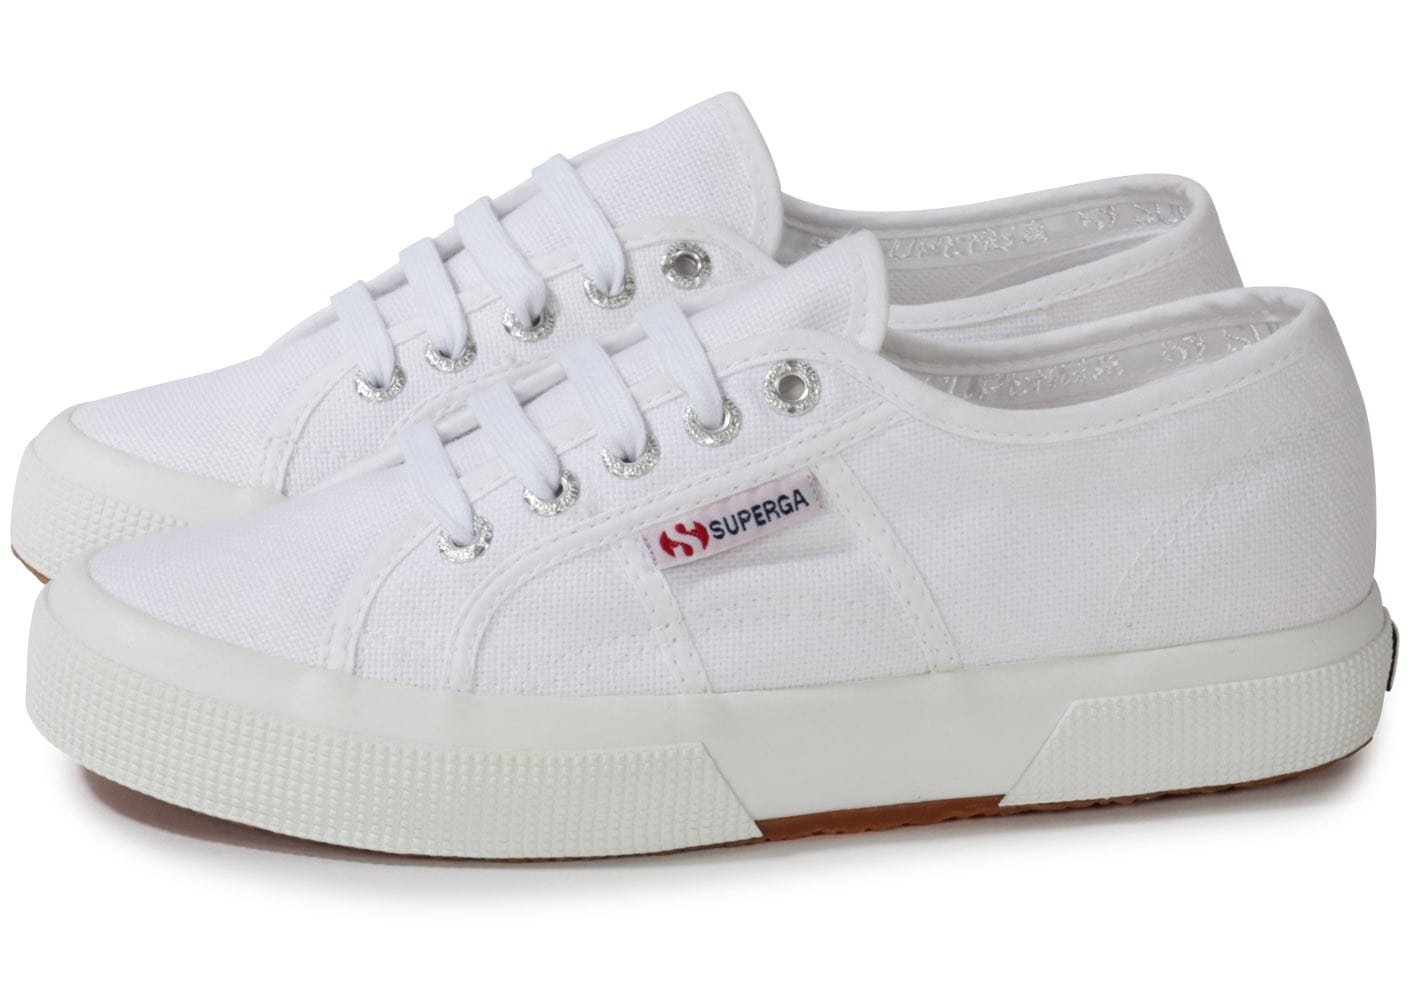 superga 2750 coti classic blanche chaussures chaussures chausport. Black Bedroom Furniture Sets. Home Design Ideas